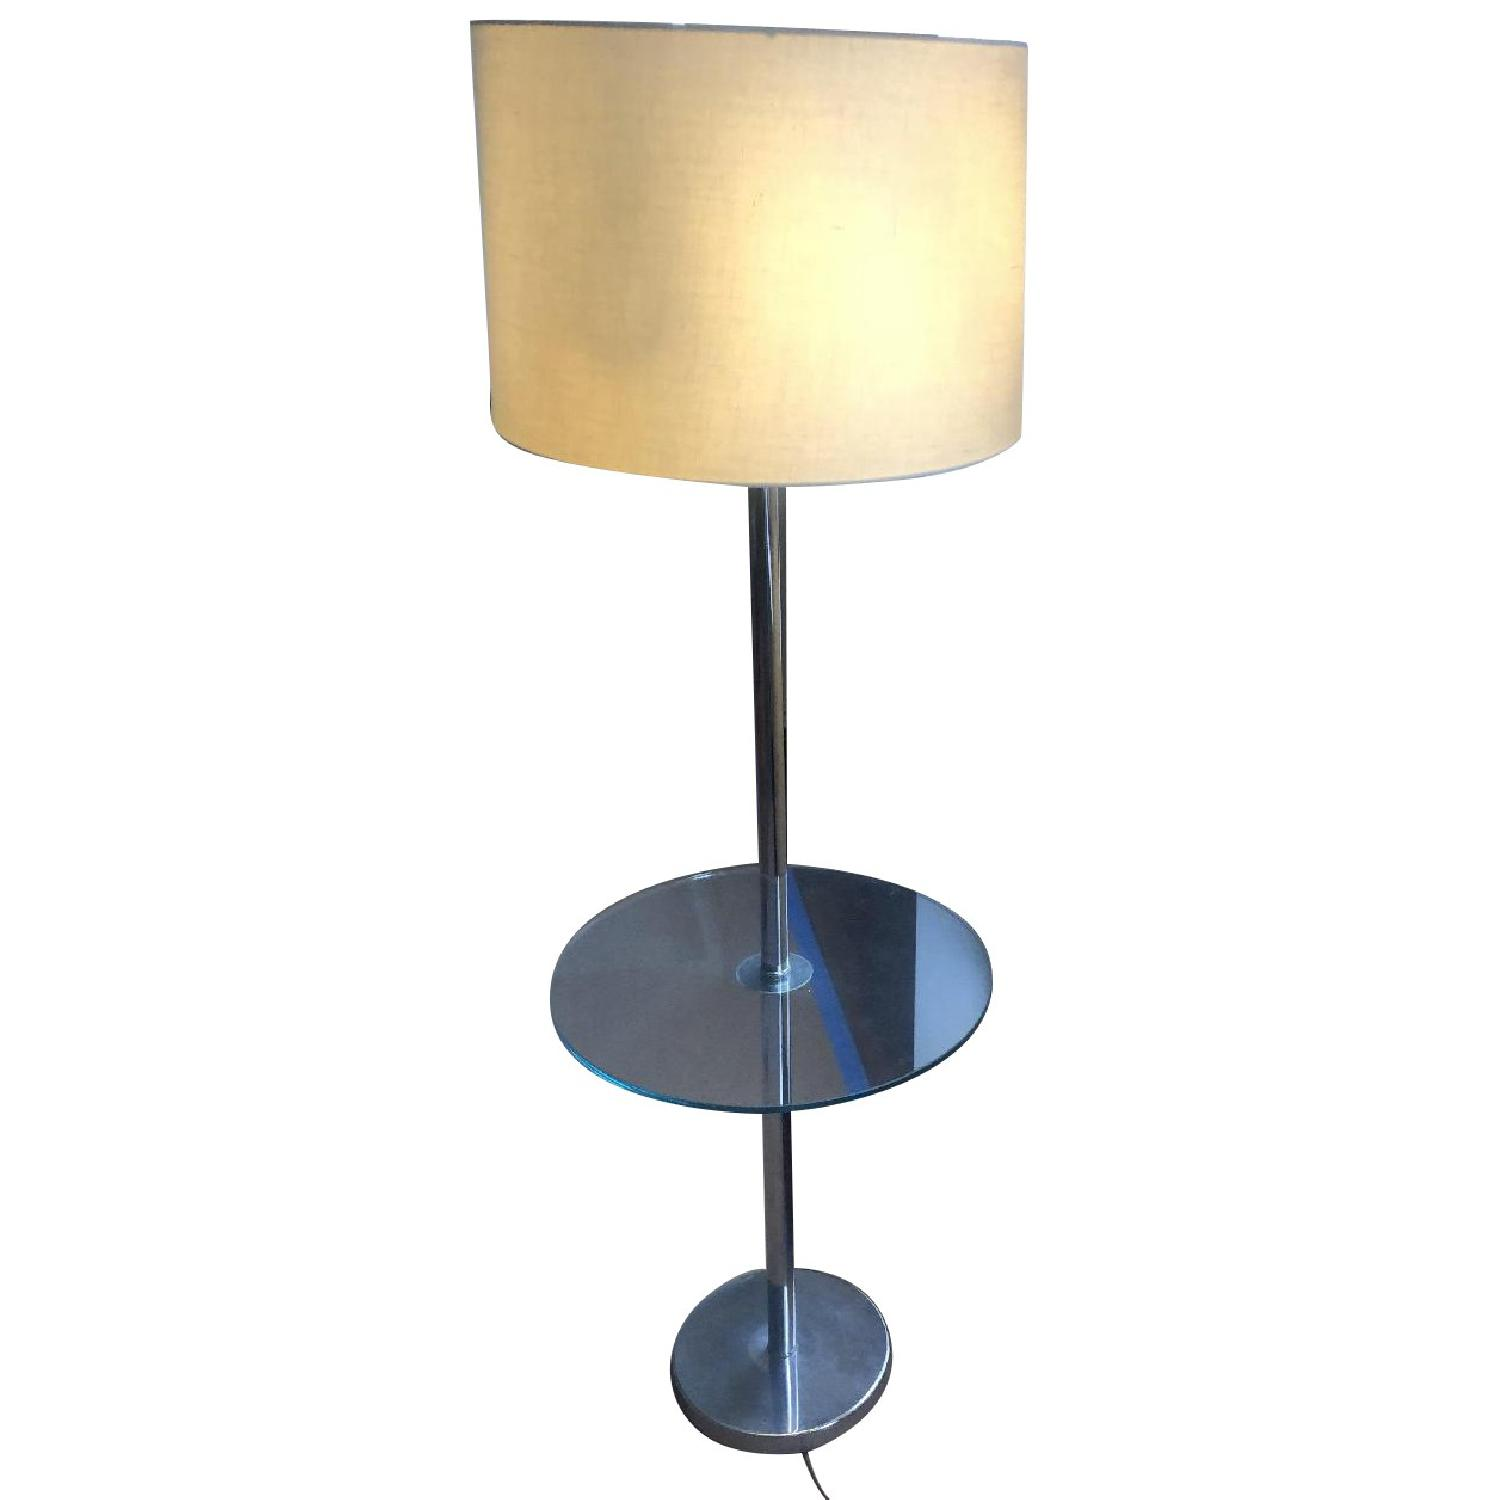 Vintage Tray Table Lamp - image-0